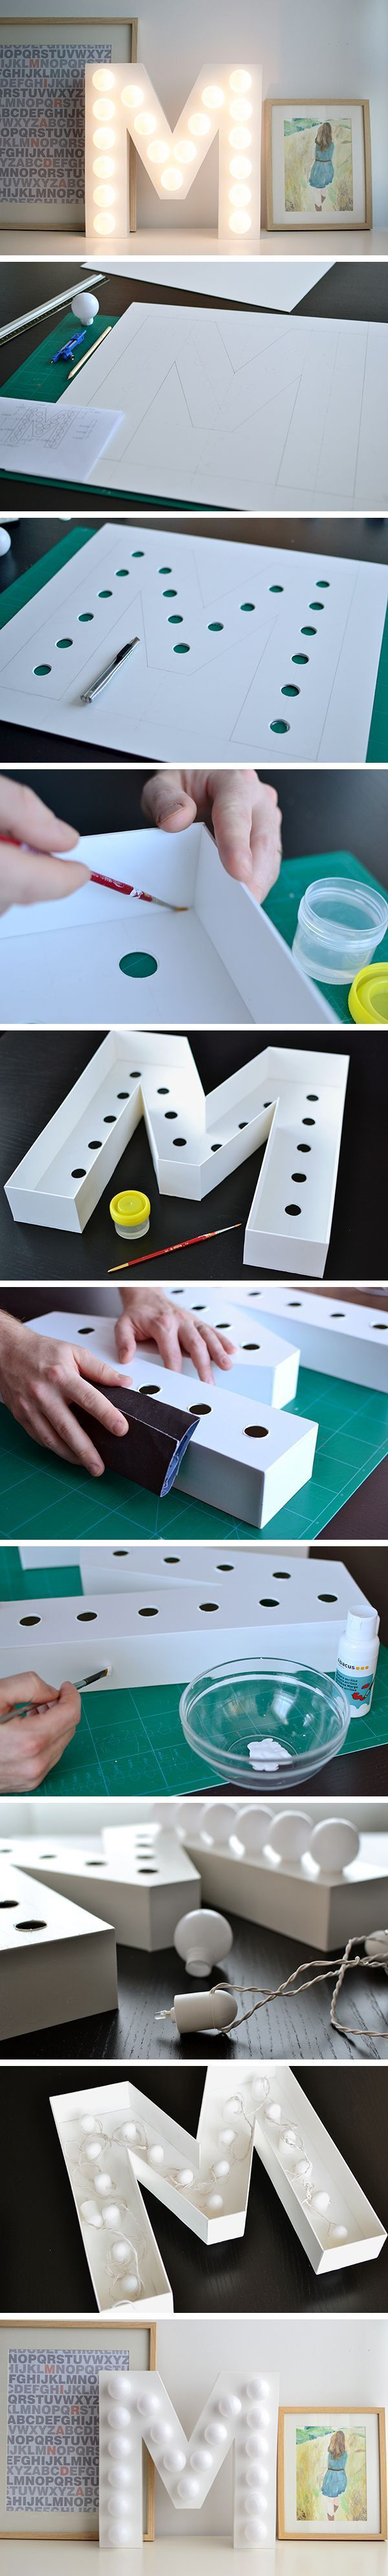 Make your dorm room a home away from home with these fun diy - 16 Clever Diy Lighting Project Ideas To Get The Best Dorm Room Ever